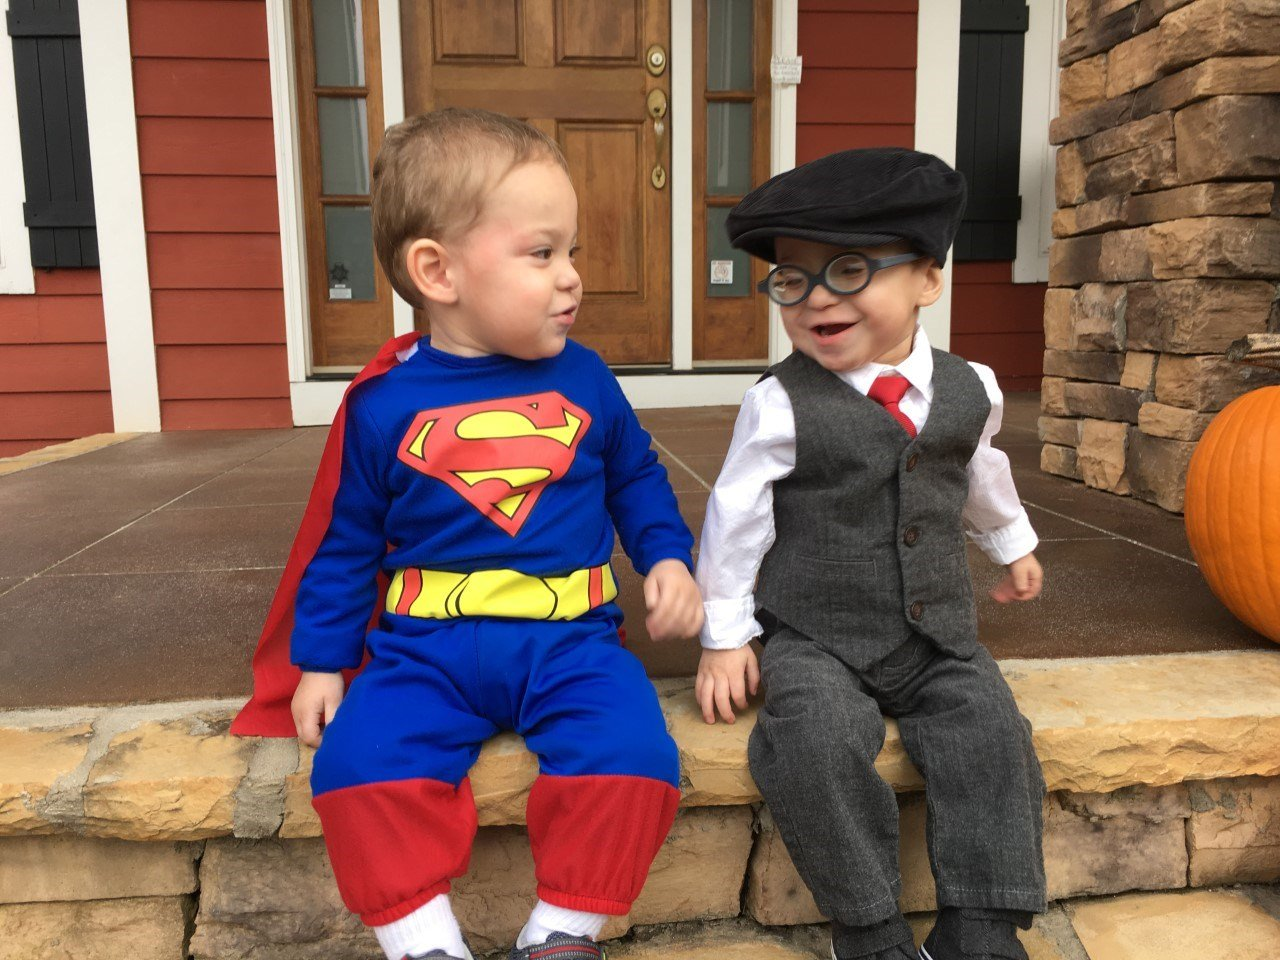 Mateo and Marcos Rodriguez on Halloween in 2016 (Courtesy: Cathy Rodriguez).